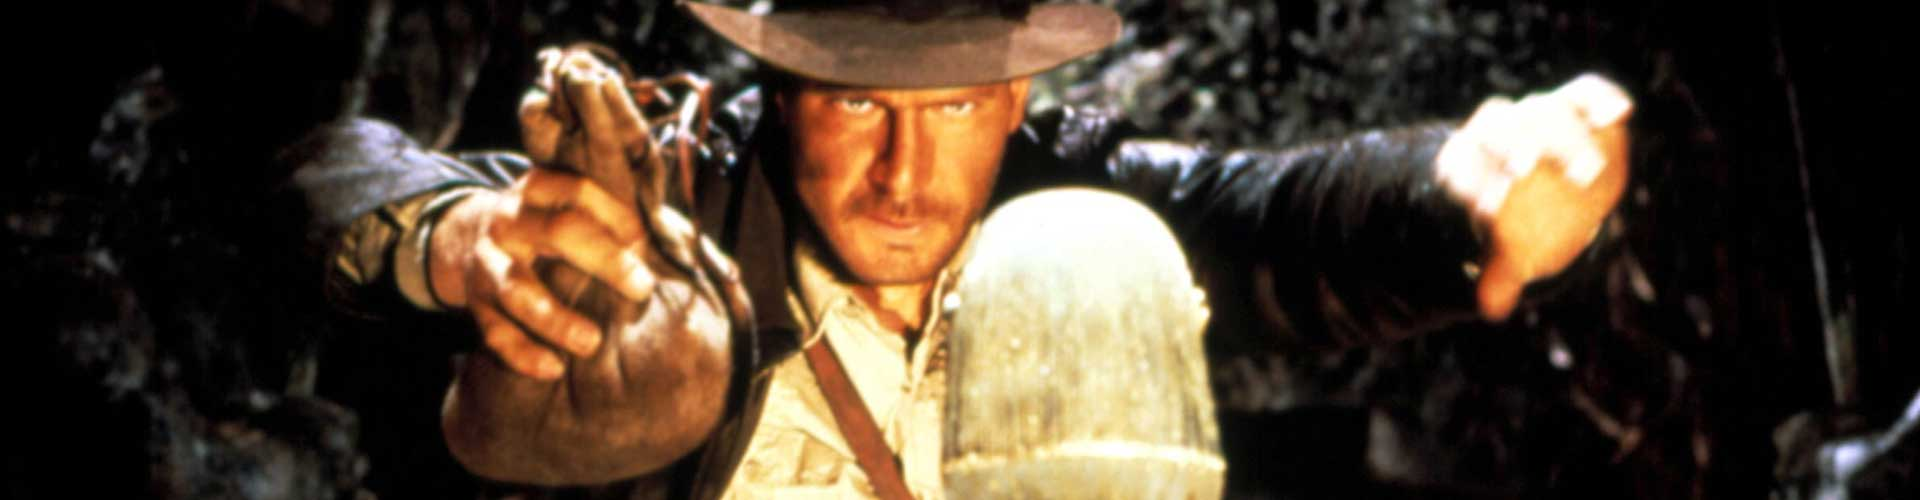 Review: Raiders Of The Lost Ark Live at the Royal Albert Hall